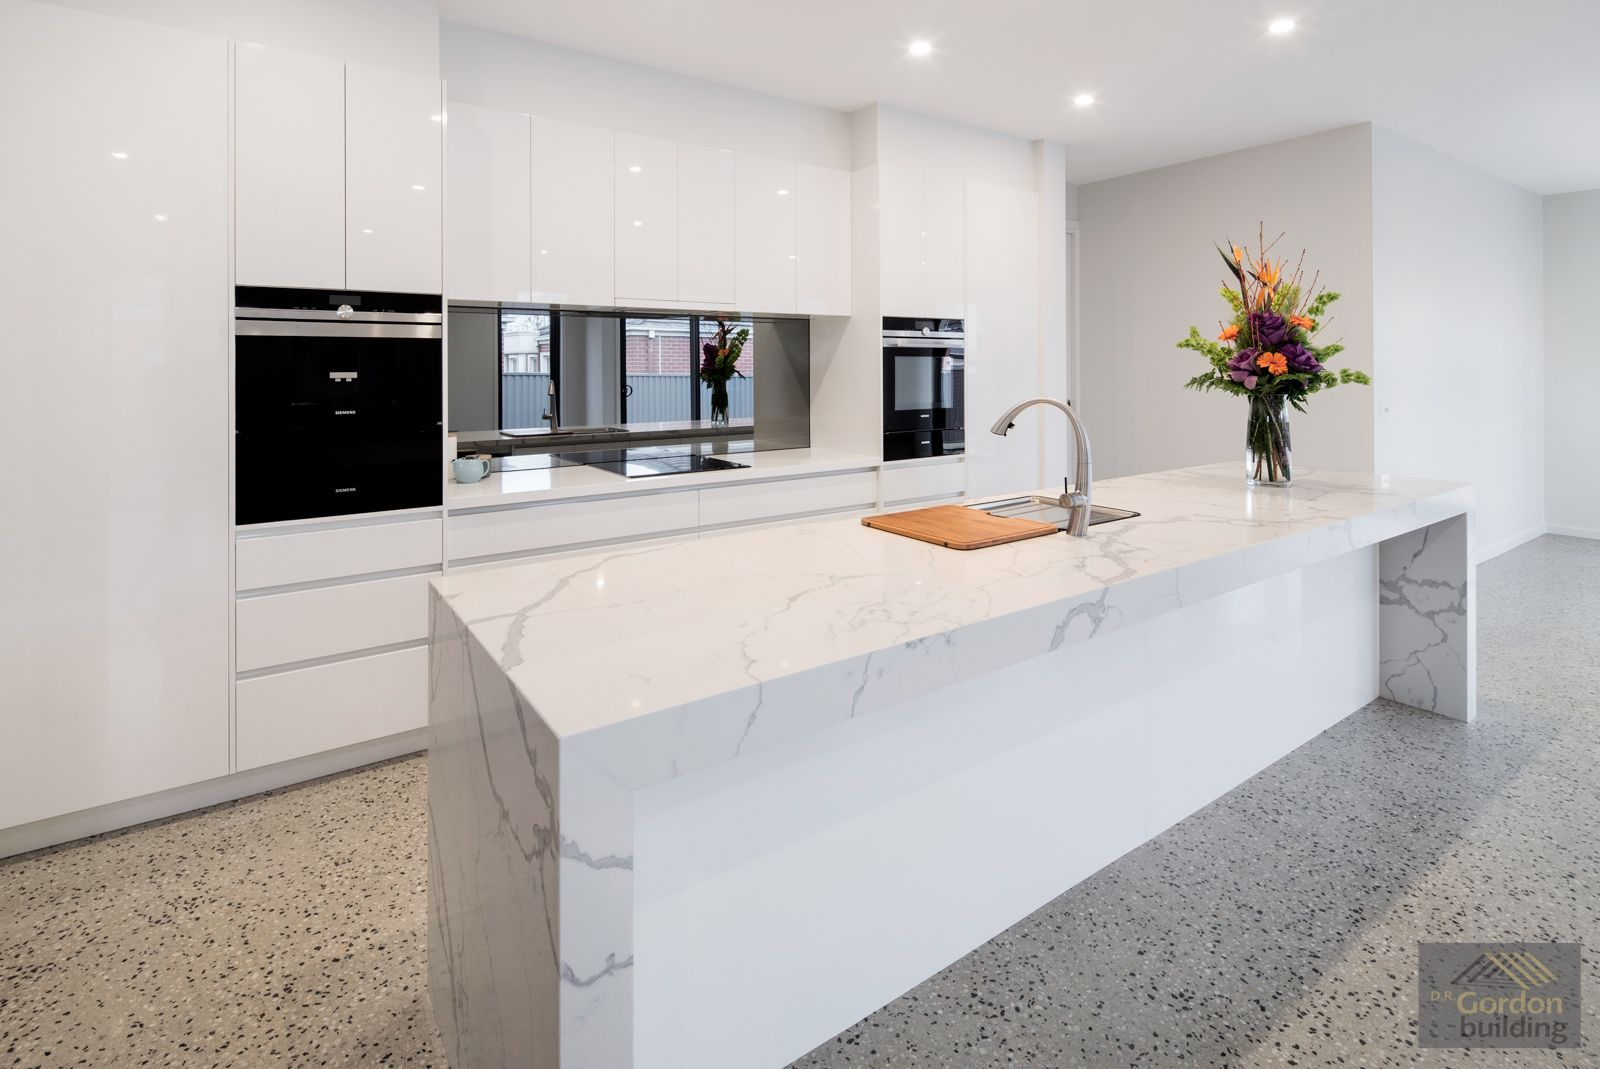 White Marble Kitchen Floors White Gloss Cabinets Marble Island Bench Smoked Mirror